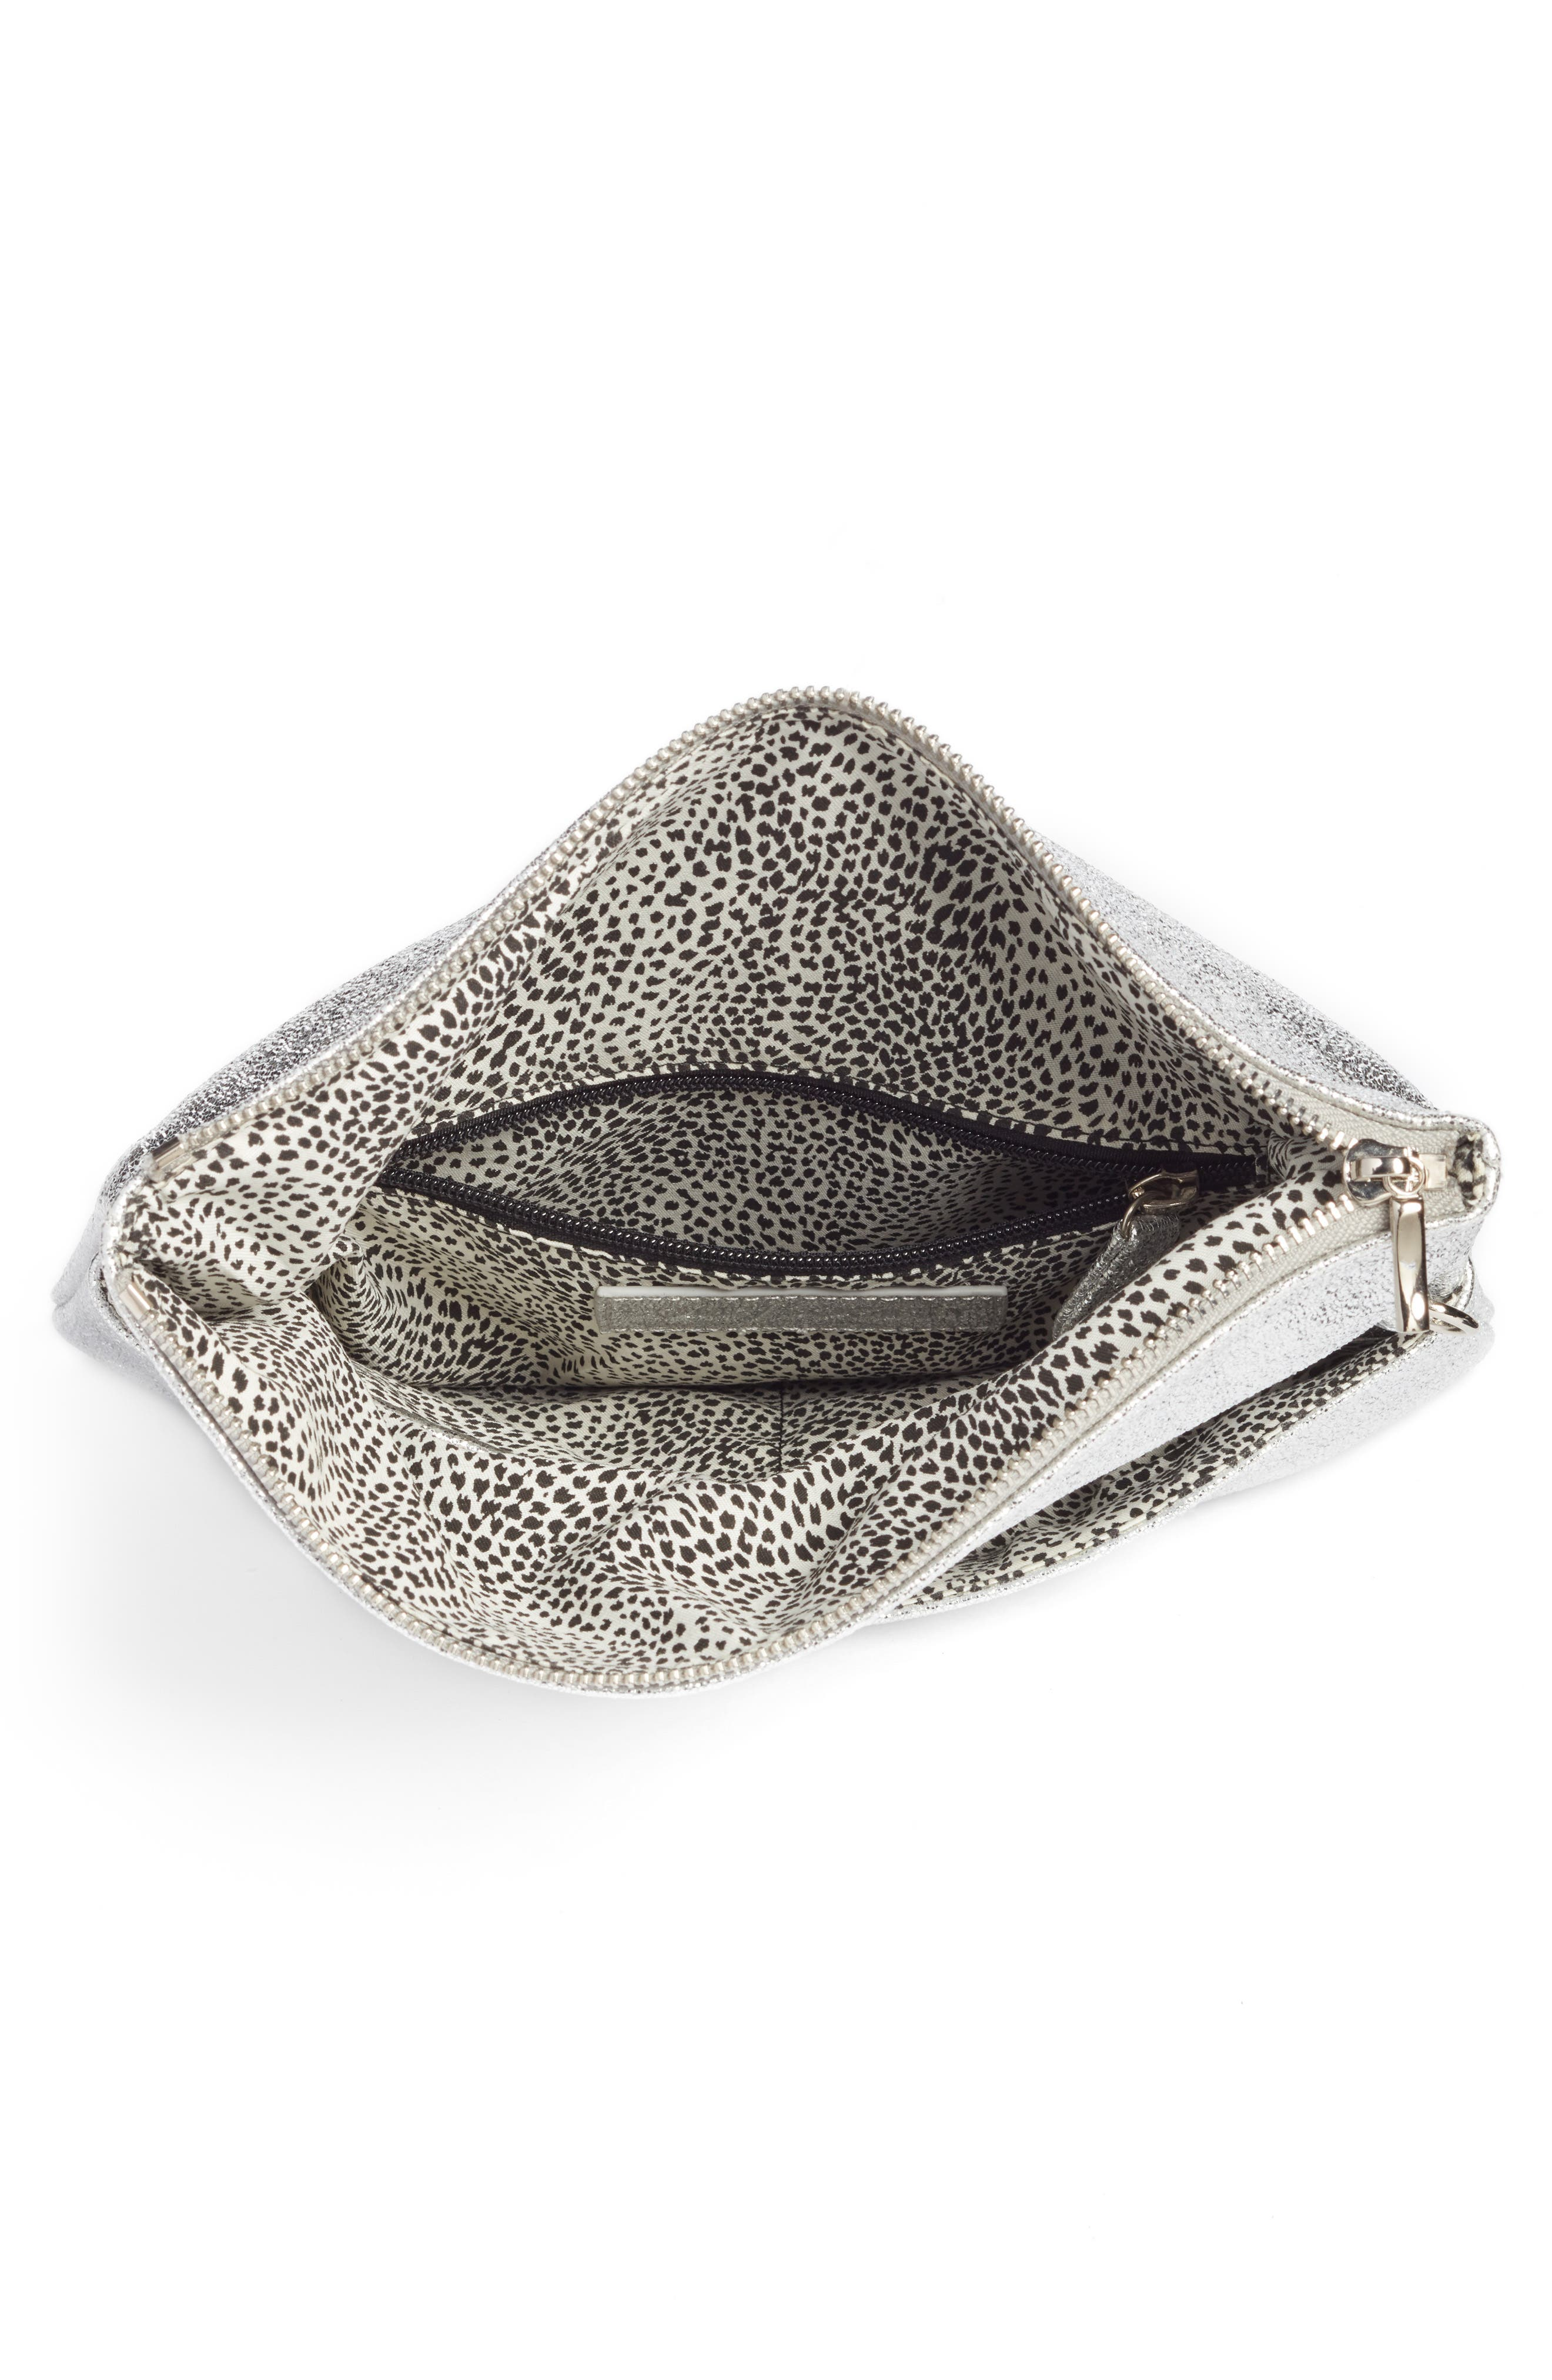 Maci Crinkle Faux Leather Foldover Clutch,                             Alternate thumbnail 4, color,                             Silver